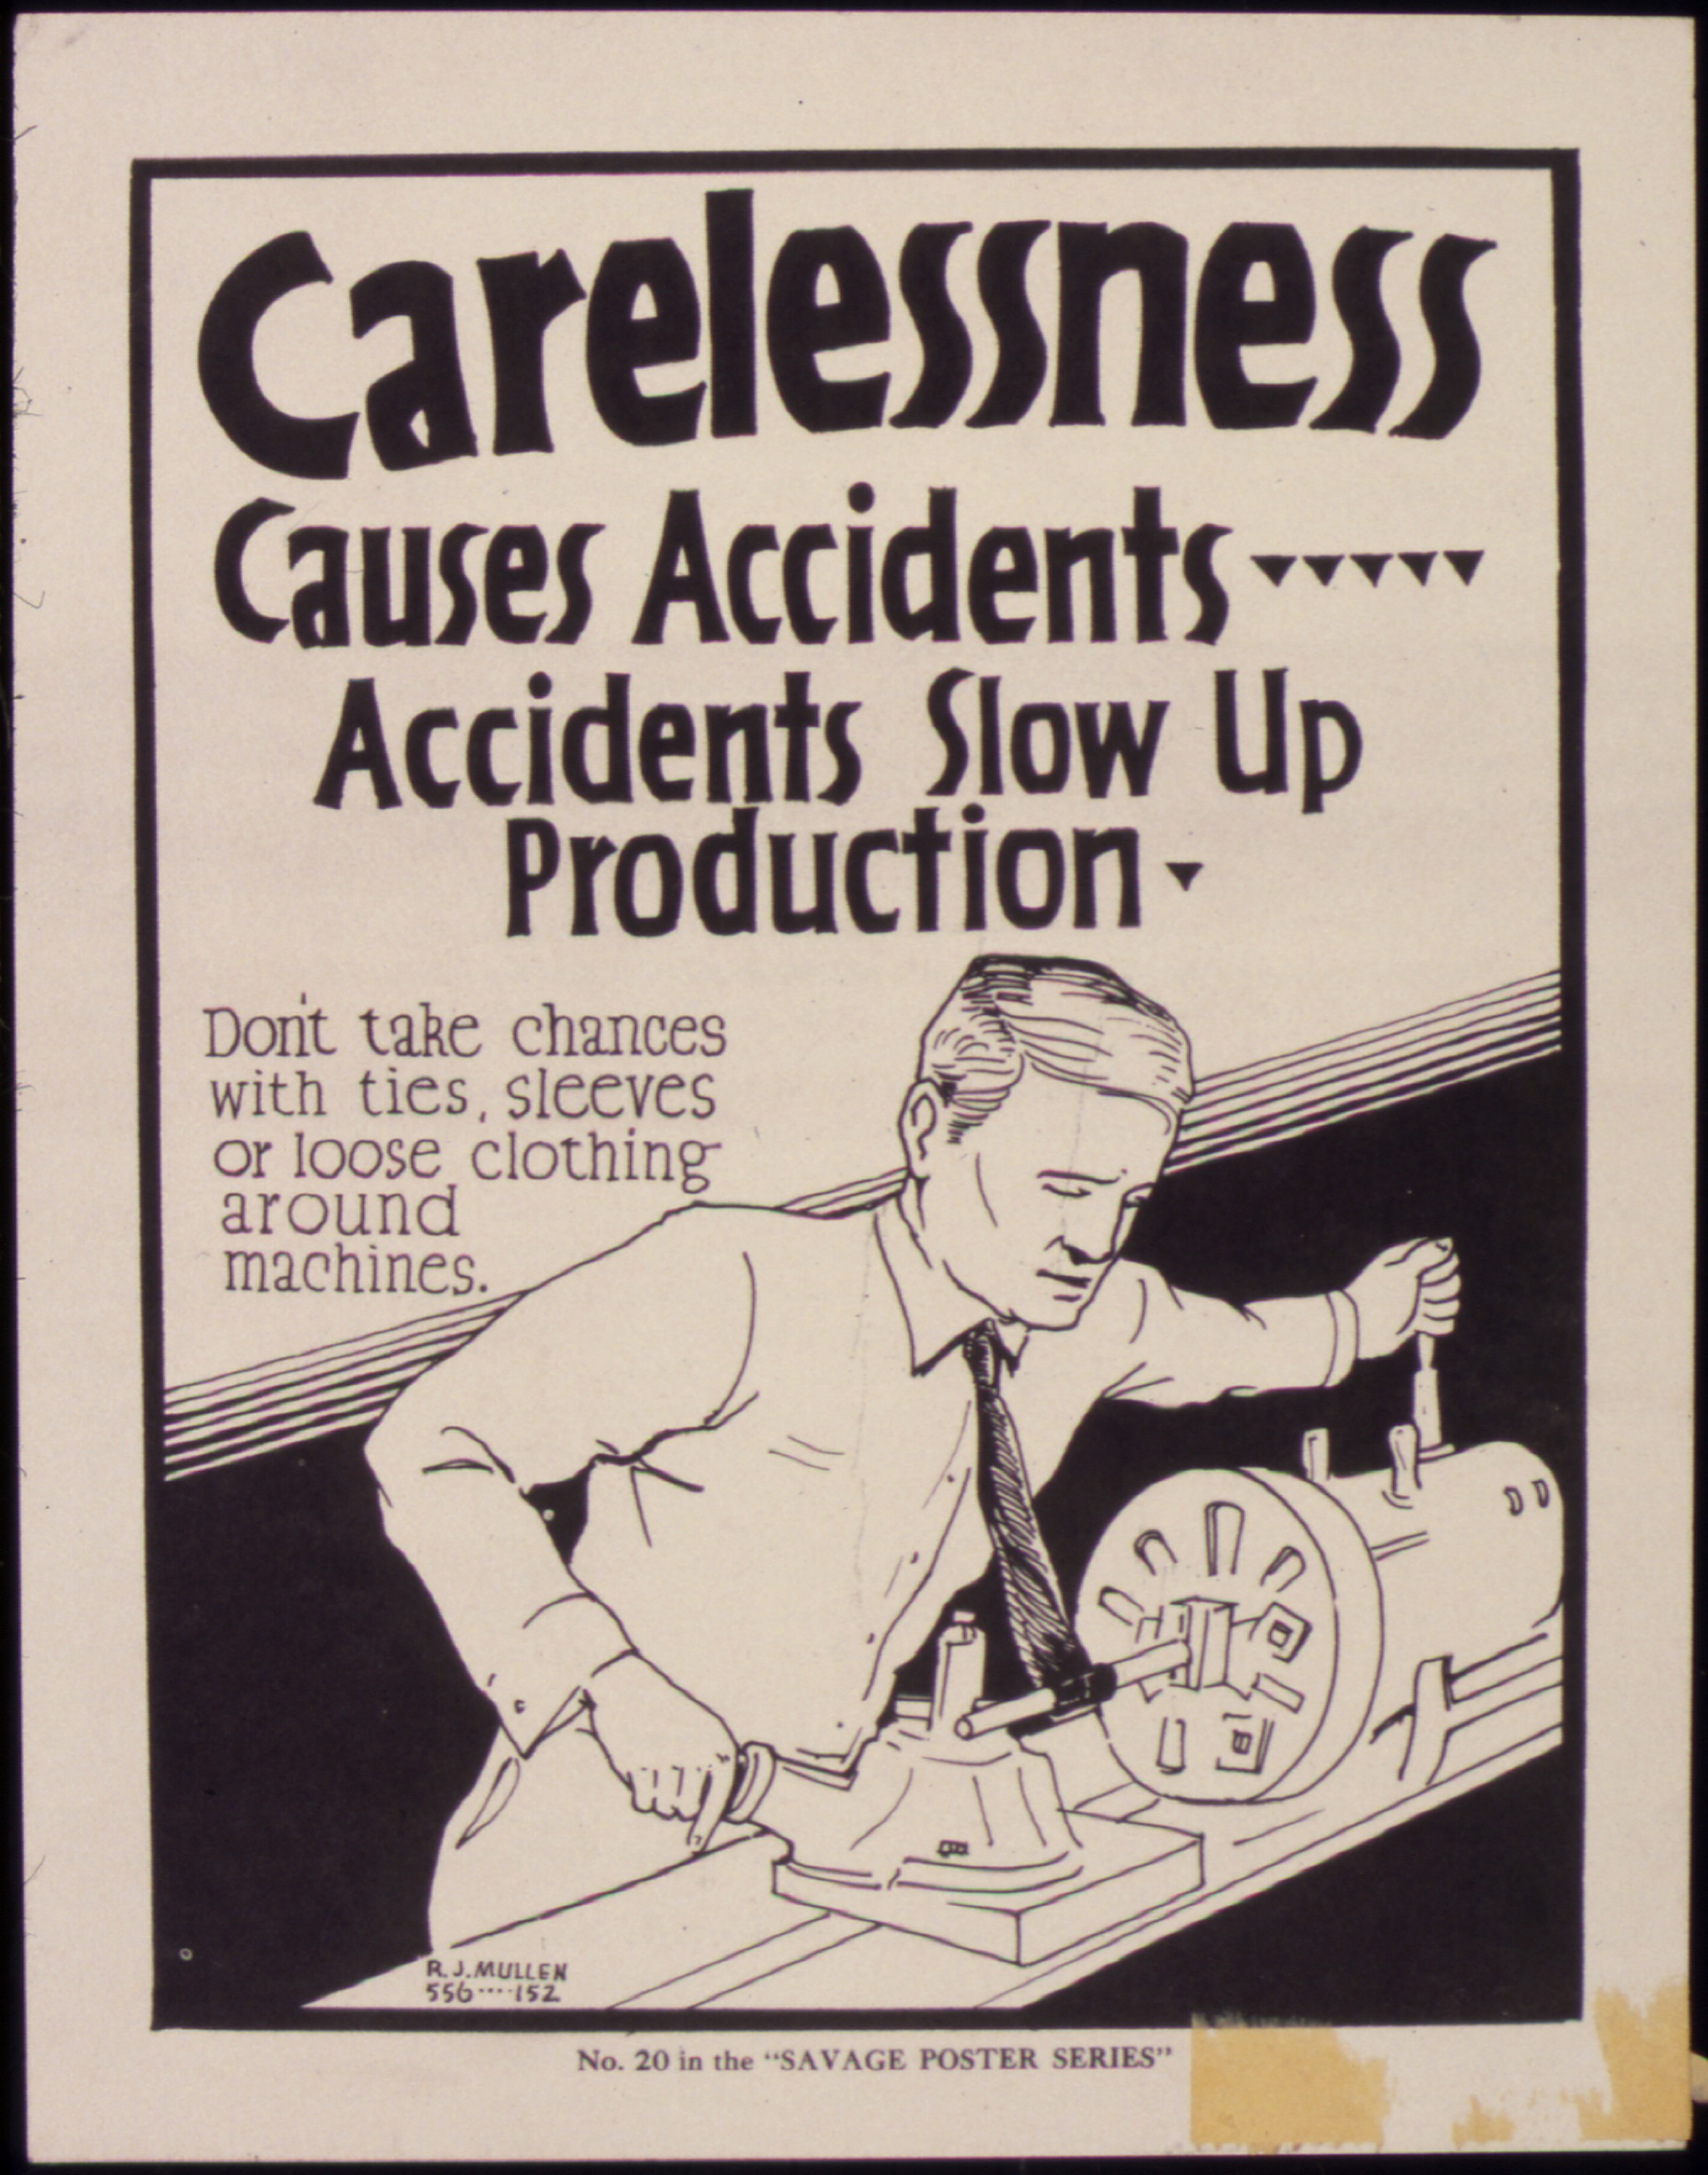 File Carelessness causes accidents    Accidents slow up production    Carelessness